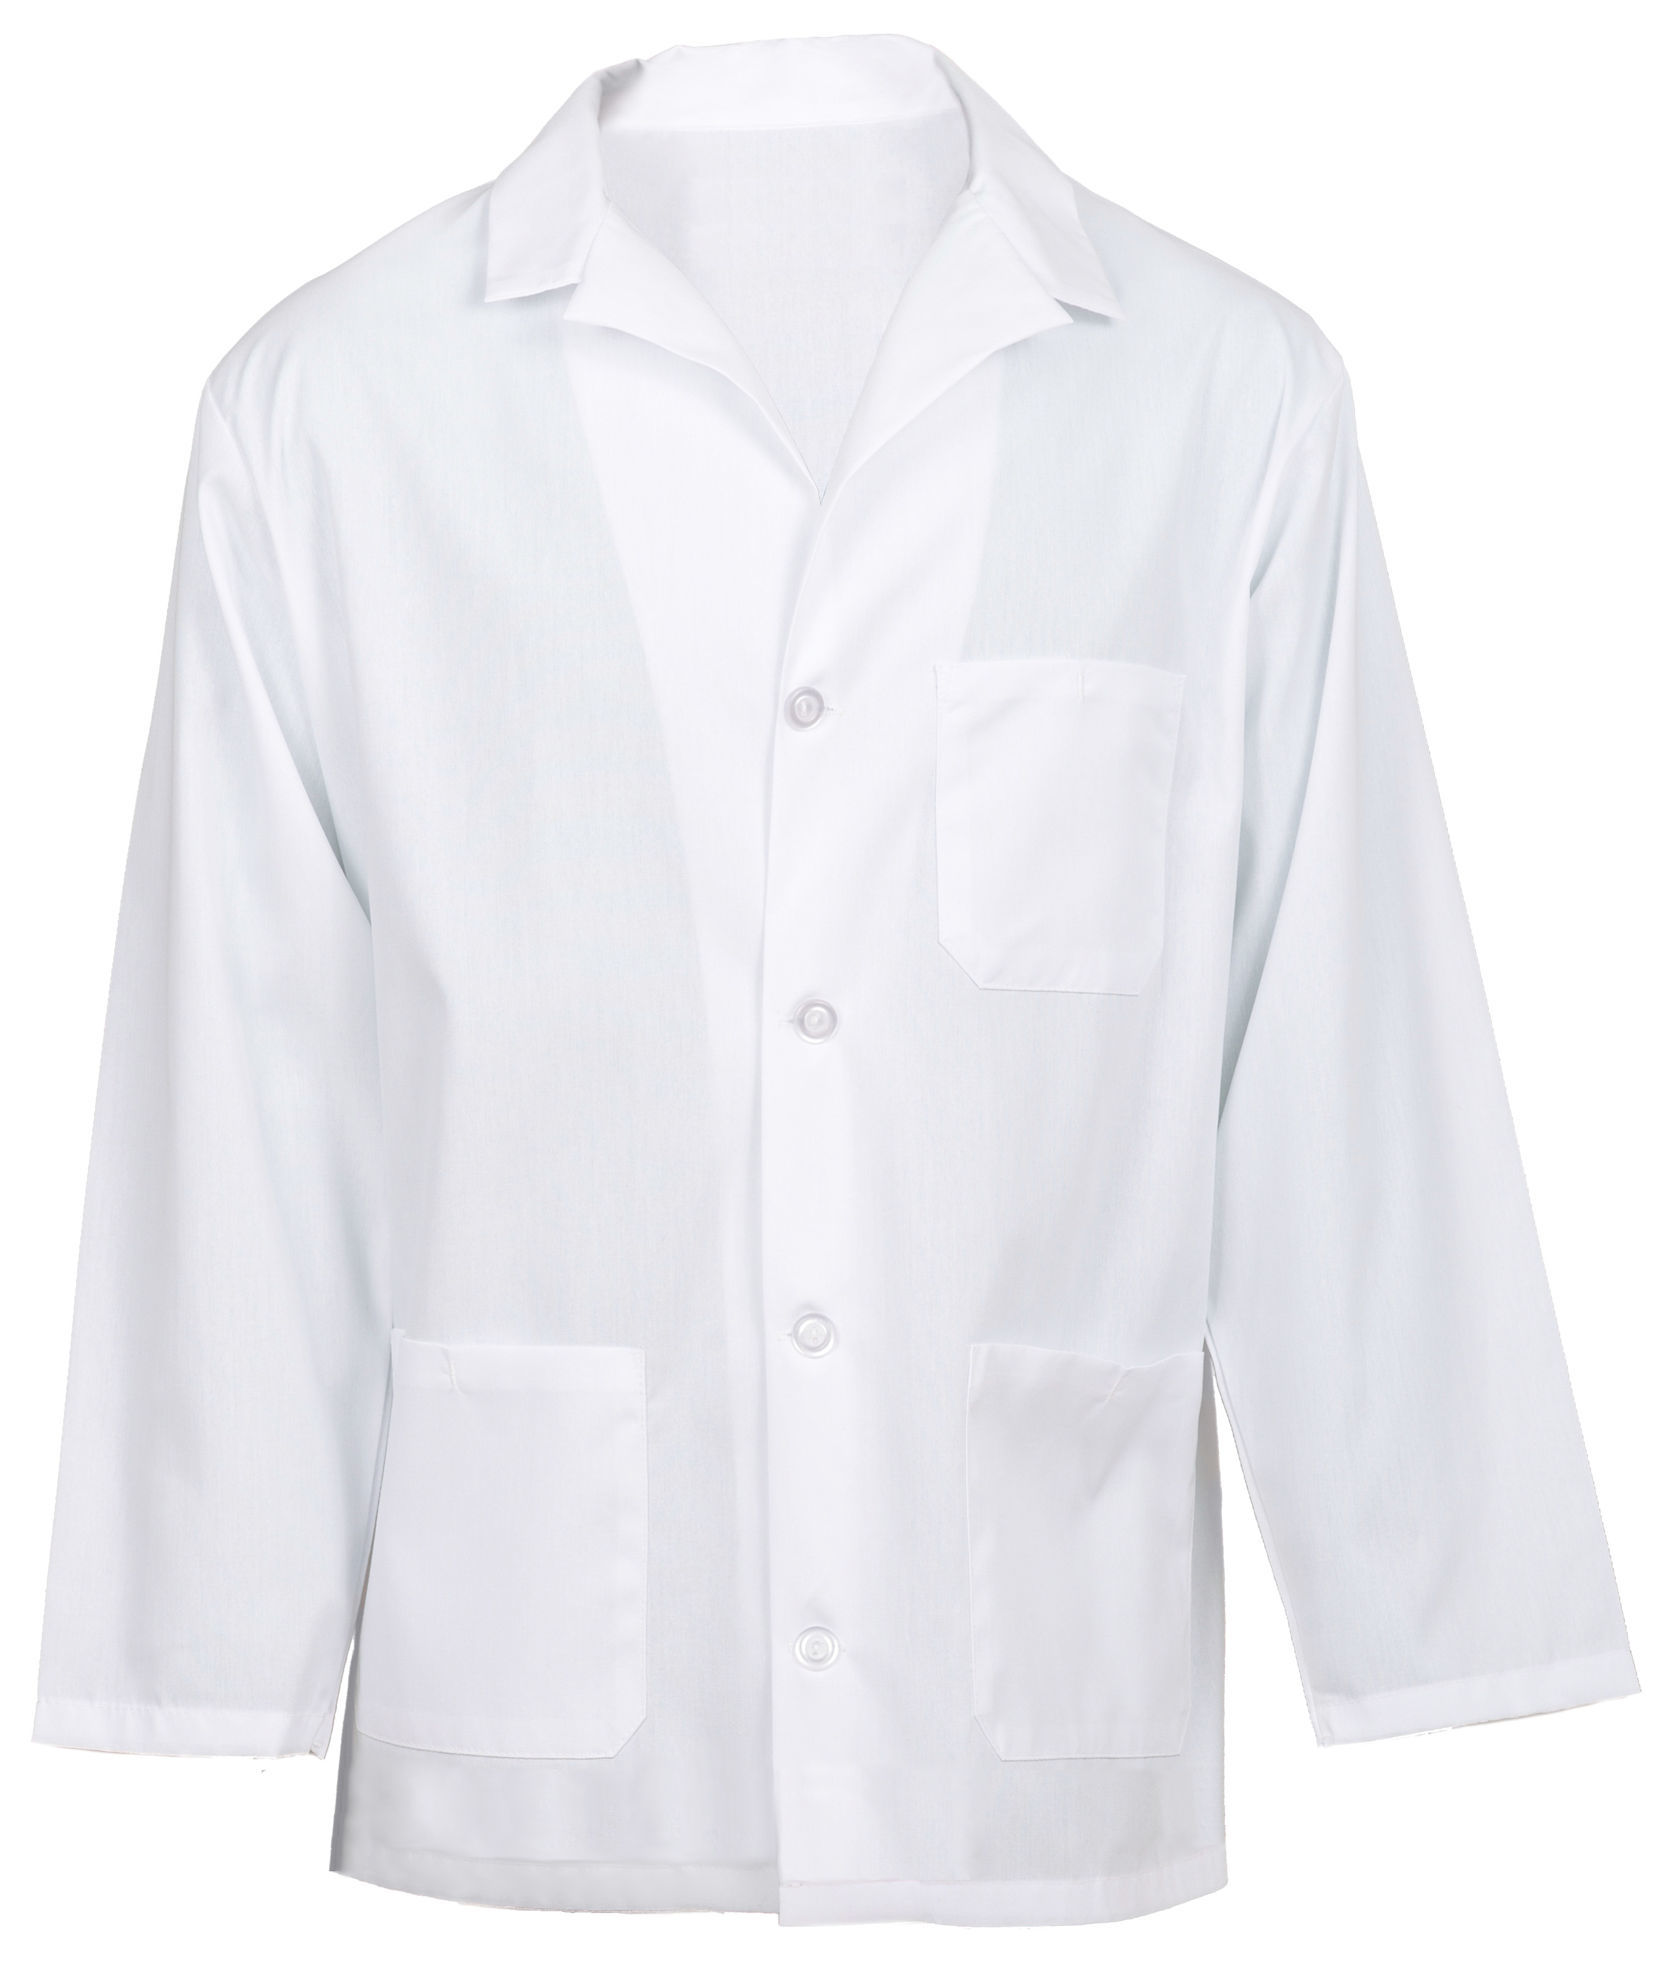 Picture of Lapel/Counter/Office Coat (DISCONTINUED STYLE)